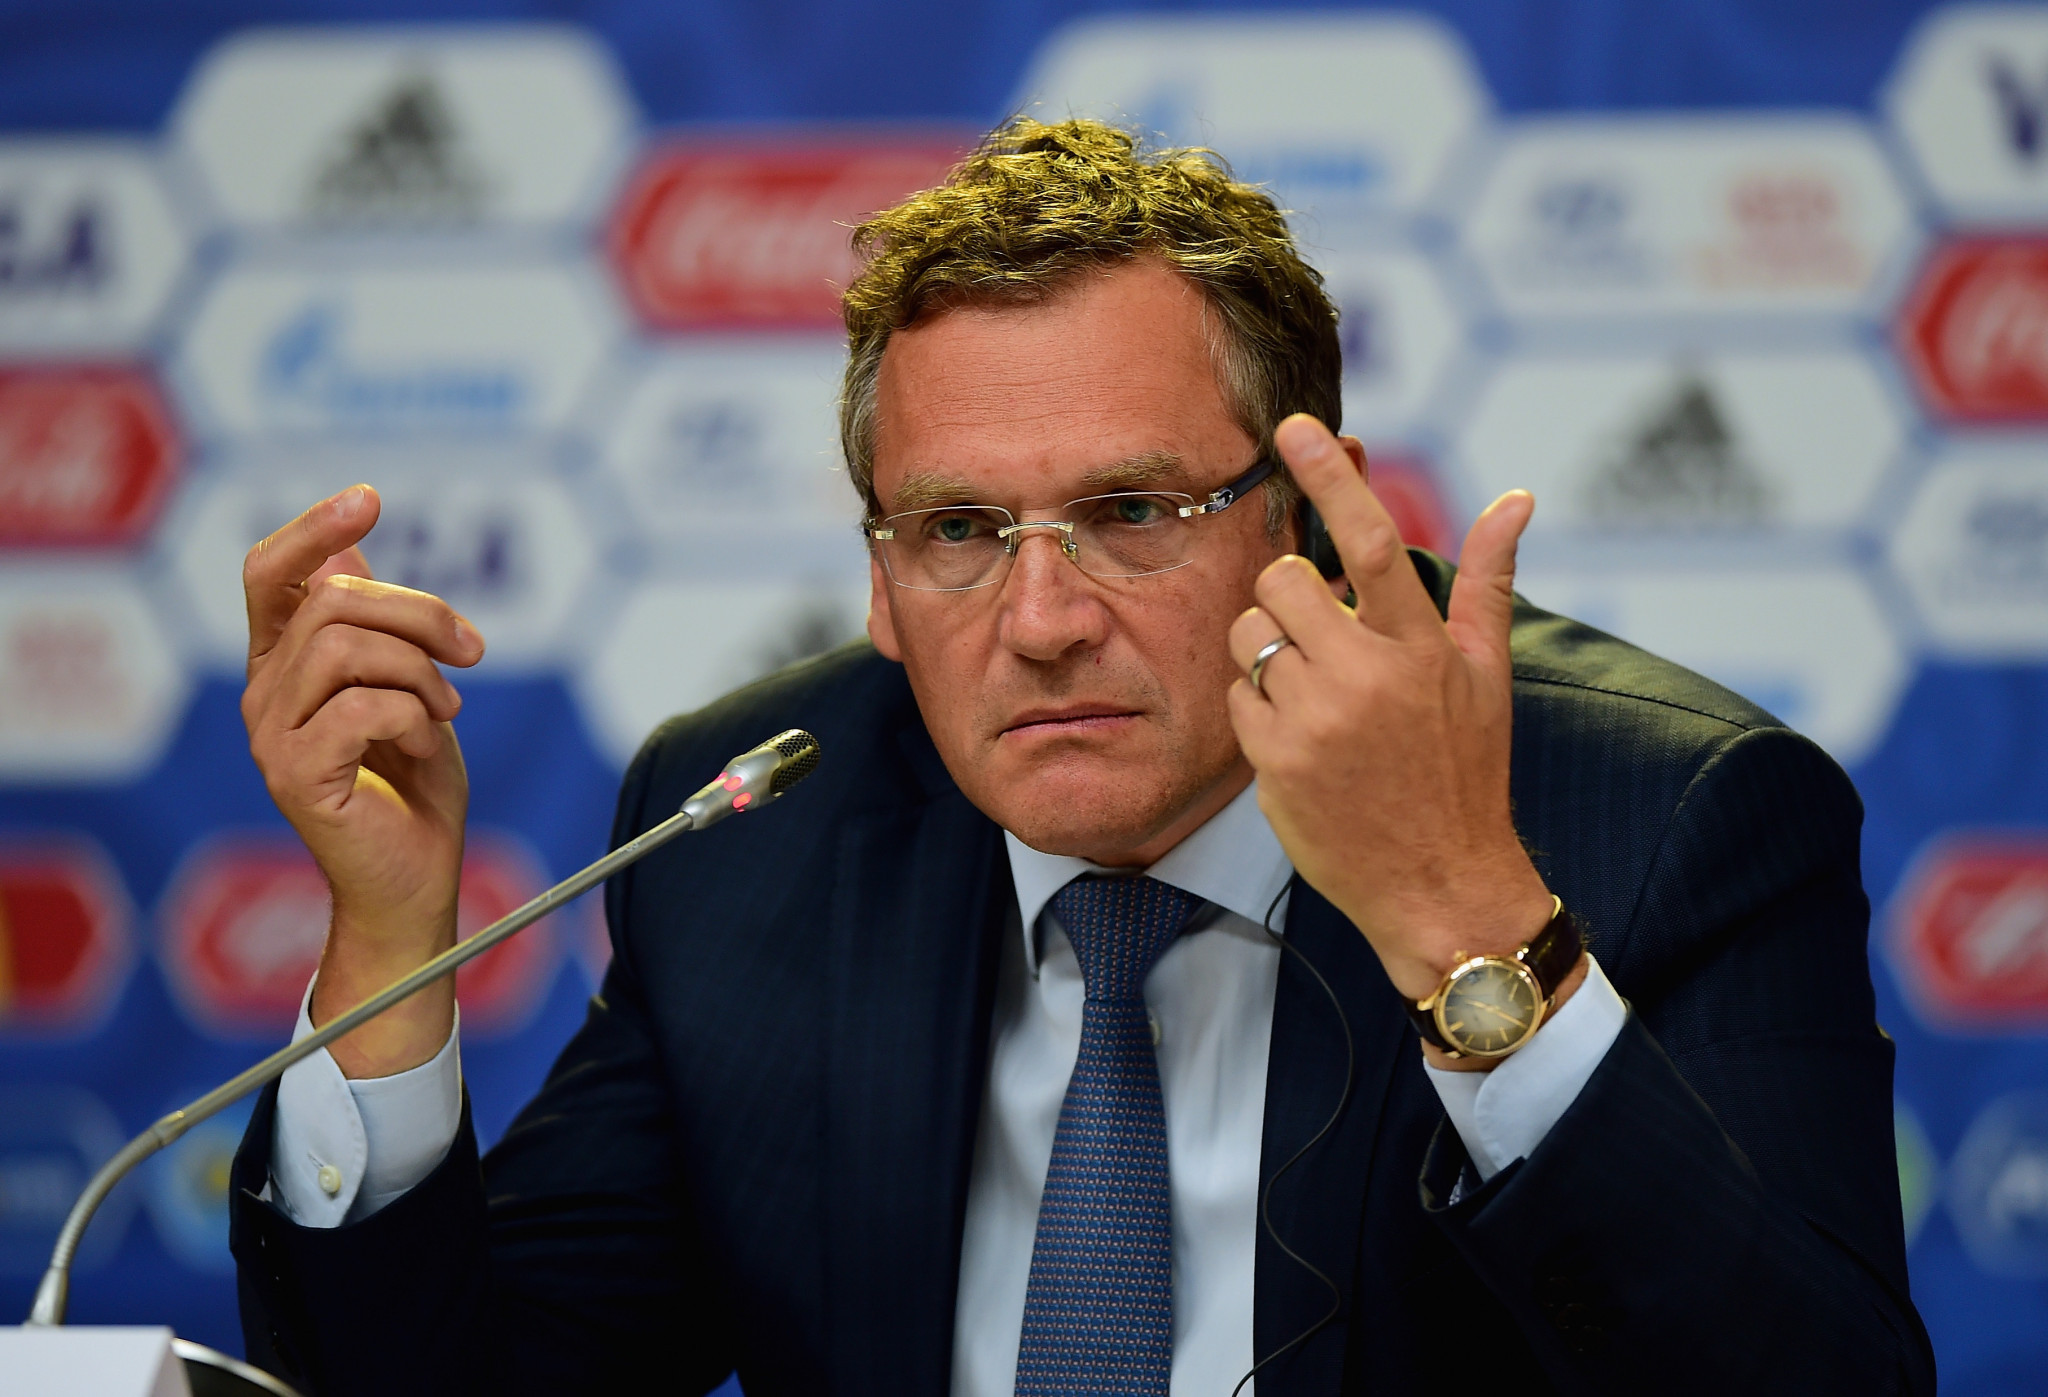 Valcke, already banned from football for ten years by FIFA, denies all charges against him in this trial ©Getty Images